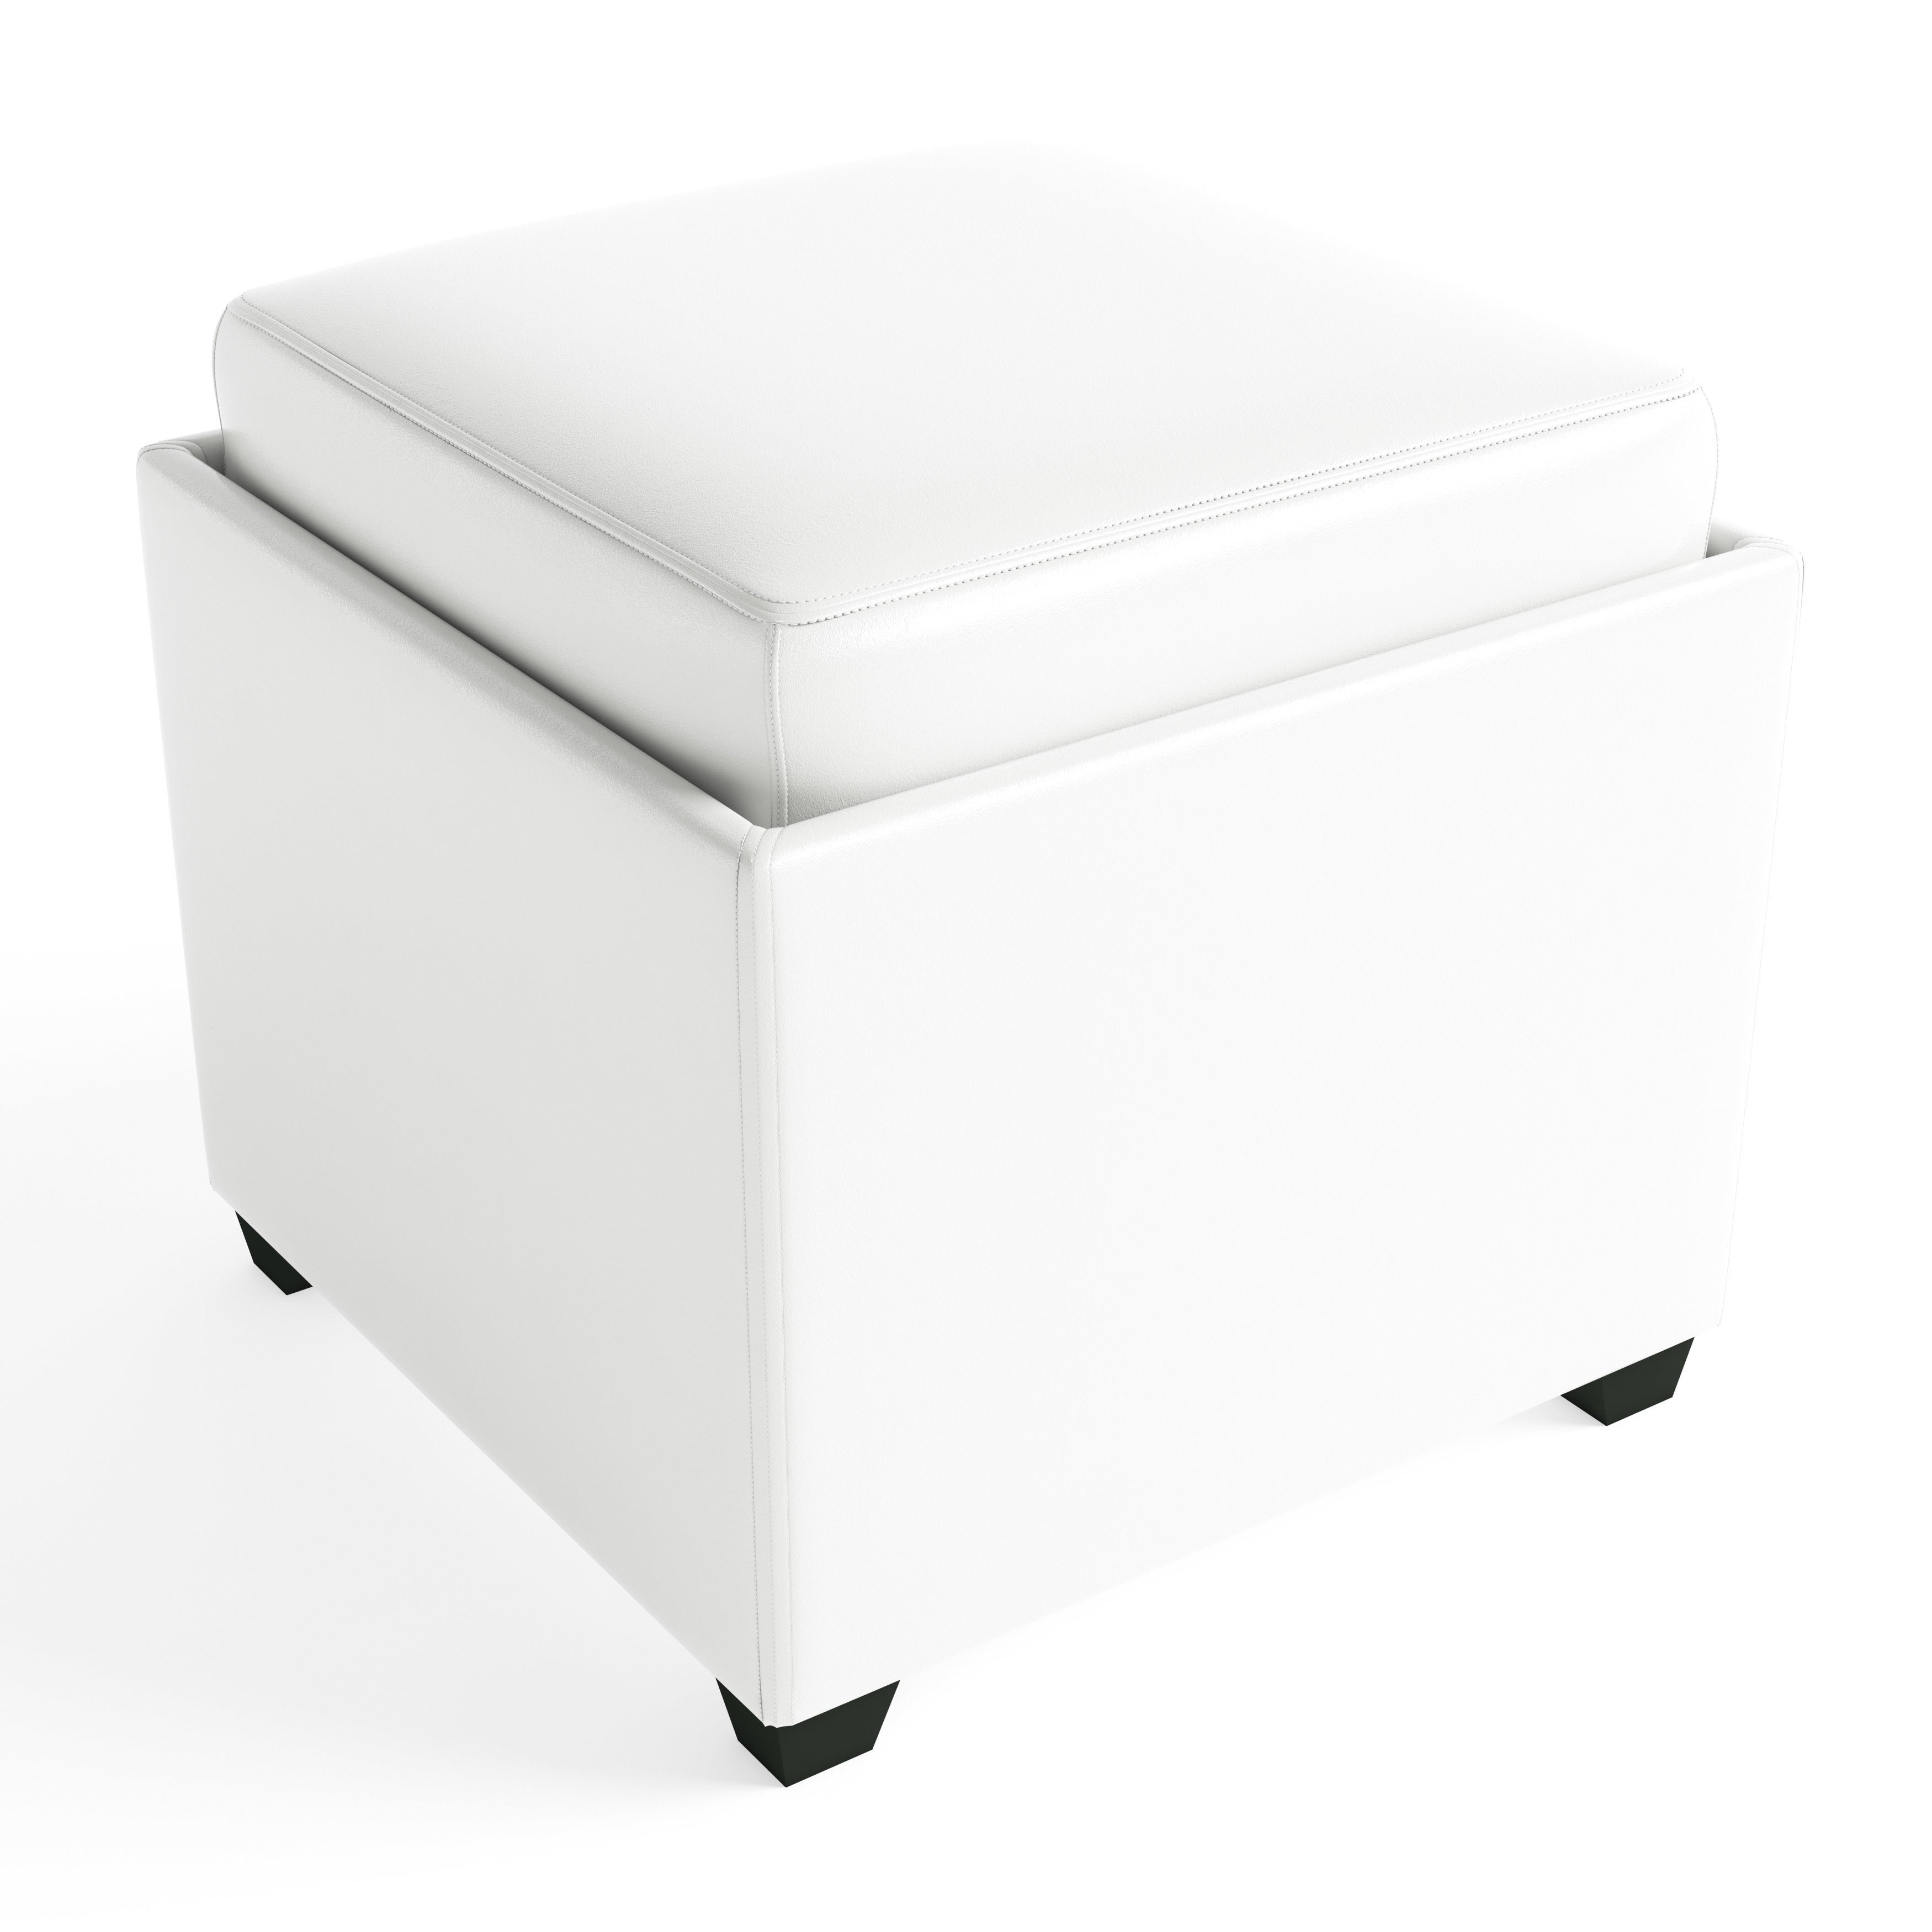 Attirant Shop Clay Alder Home Easley Contemporary Storage Ottoman With Tray   On  Sale   Free Shipping Today   Overstock.com   20254715